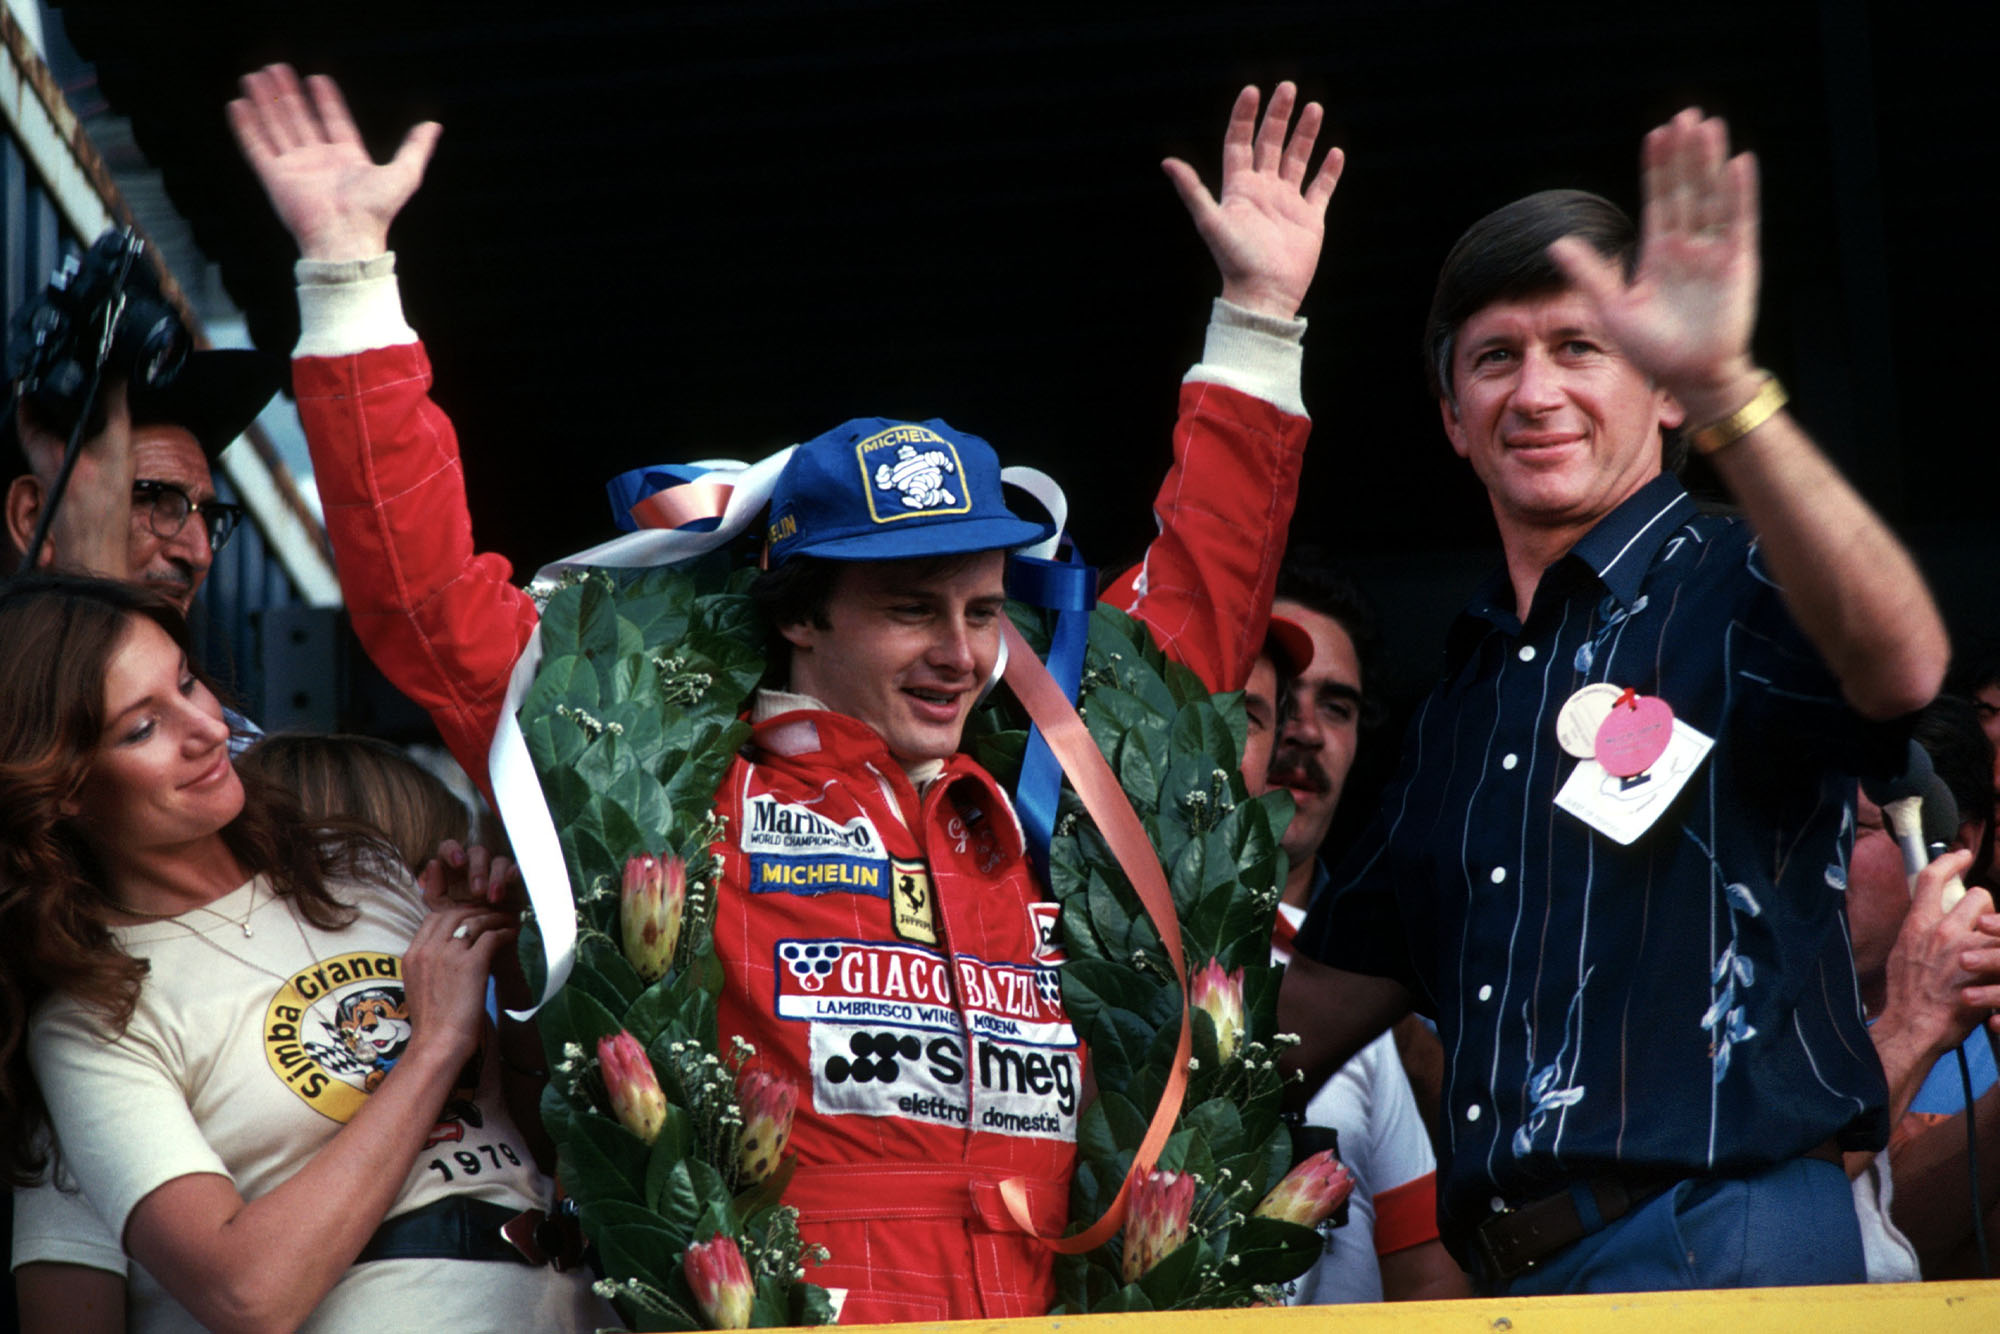 A delighted Gilles Villeneuve (Ferrari) acknowledges the crowd after winning the 1979 South African Grand Prix.